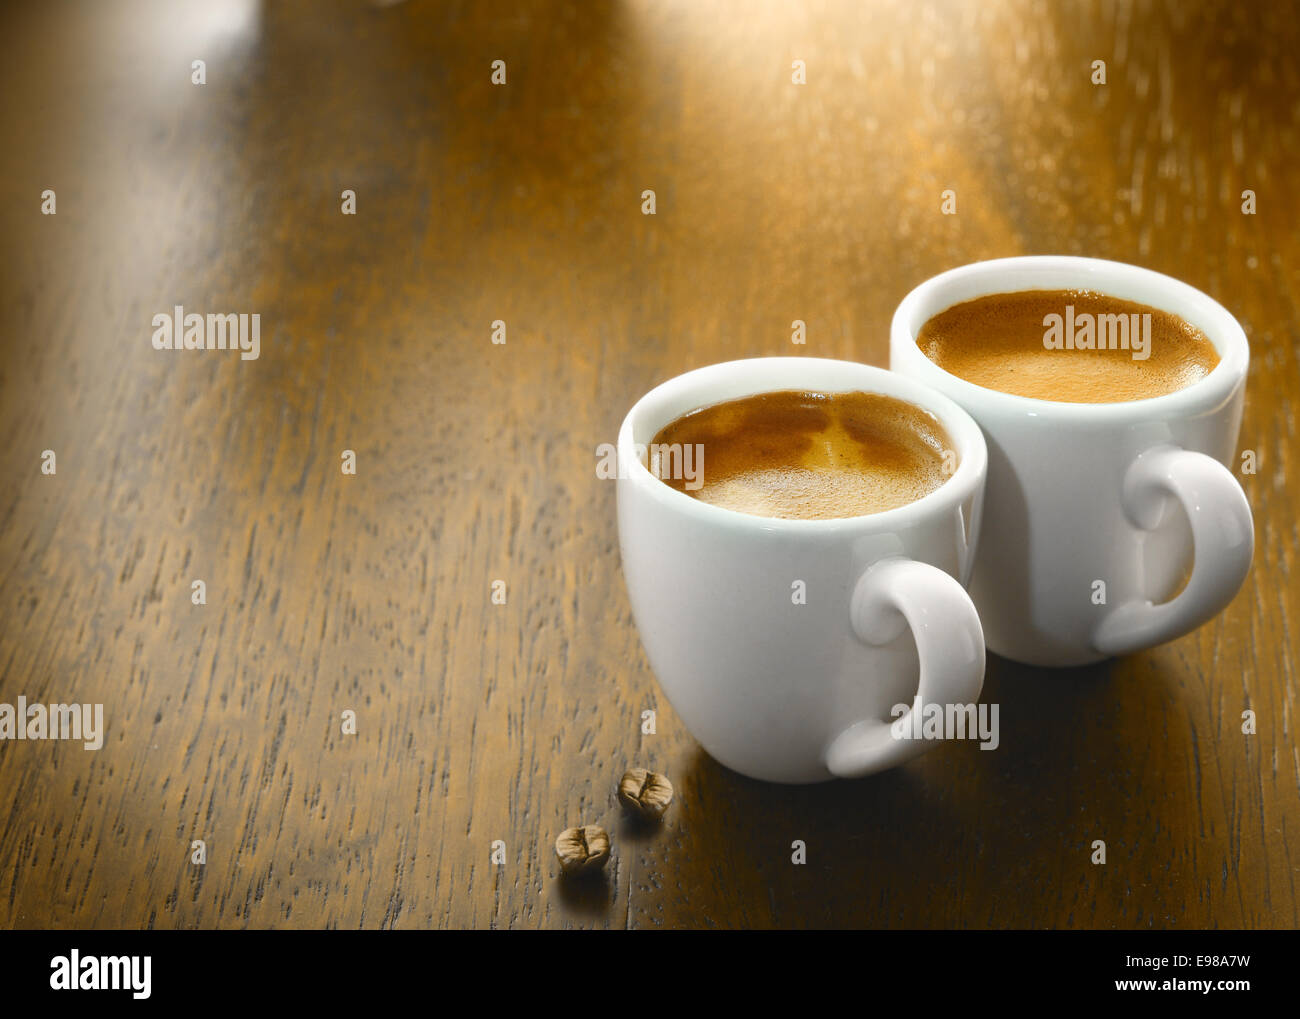 Two cups of freshly brewed espresso coffee with two single coffee beans on a textured wooden table top with copyspace - Stock Image